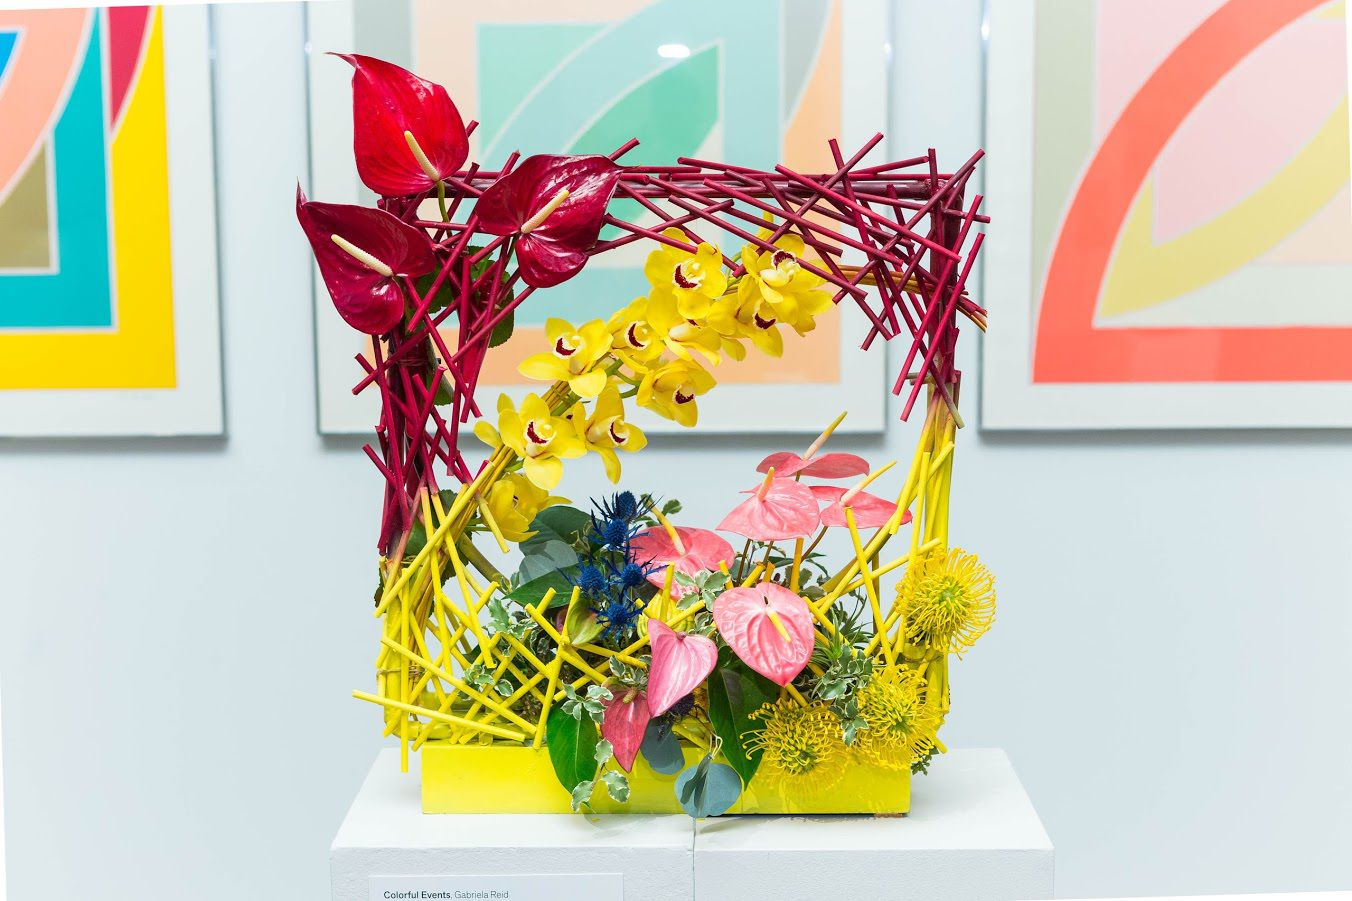 SAN FRANCISCO, CA - March 13 -  Atmosphere at Bouquets to Art 2017 at the de Young Museum on March 13th 2017 at de Young Museum in San Francisco, CA (Photo - Ando Caulfield for Drew Altizer Photography)